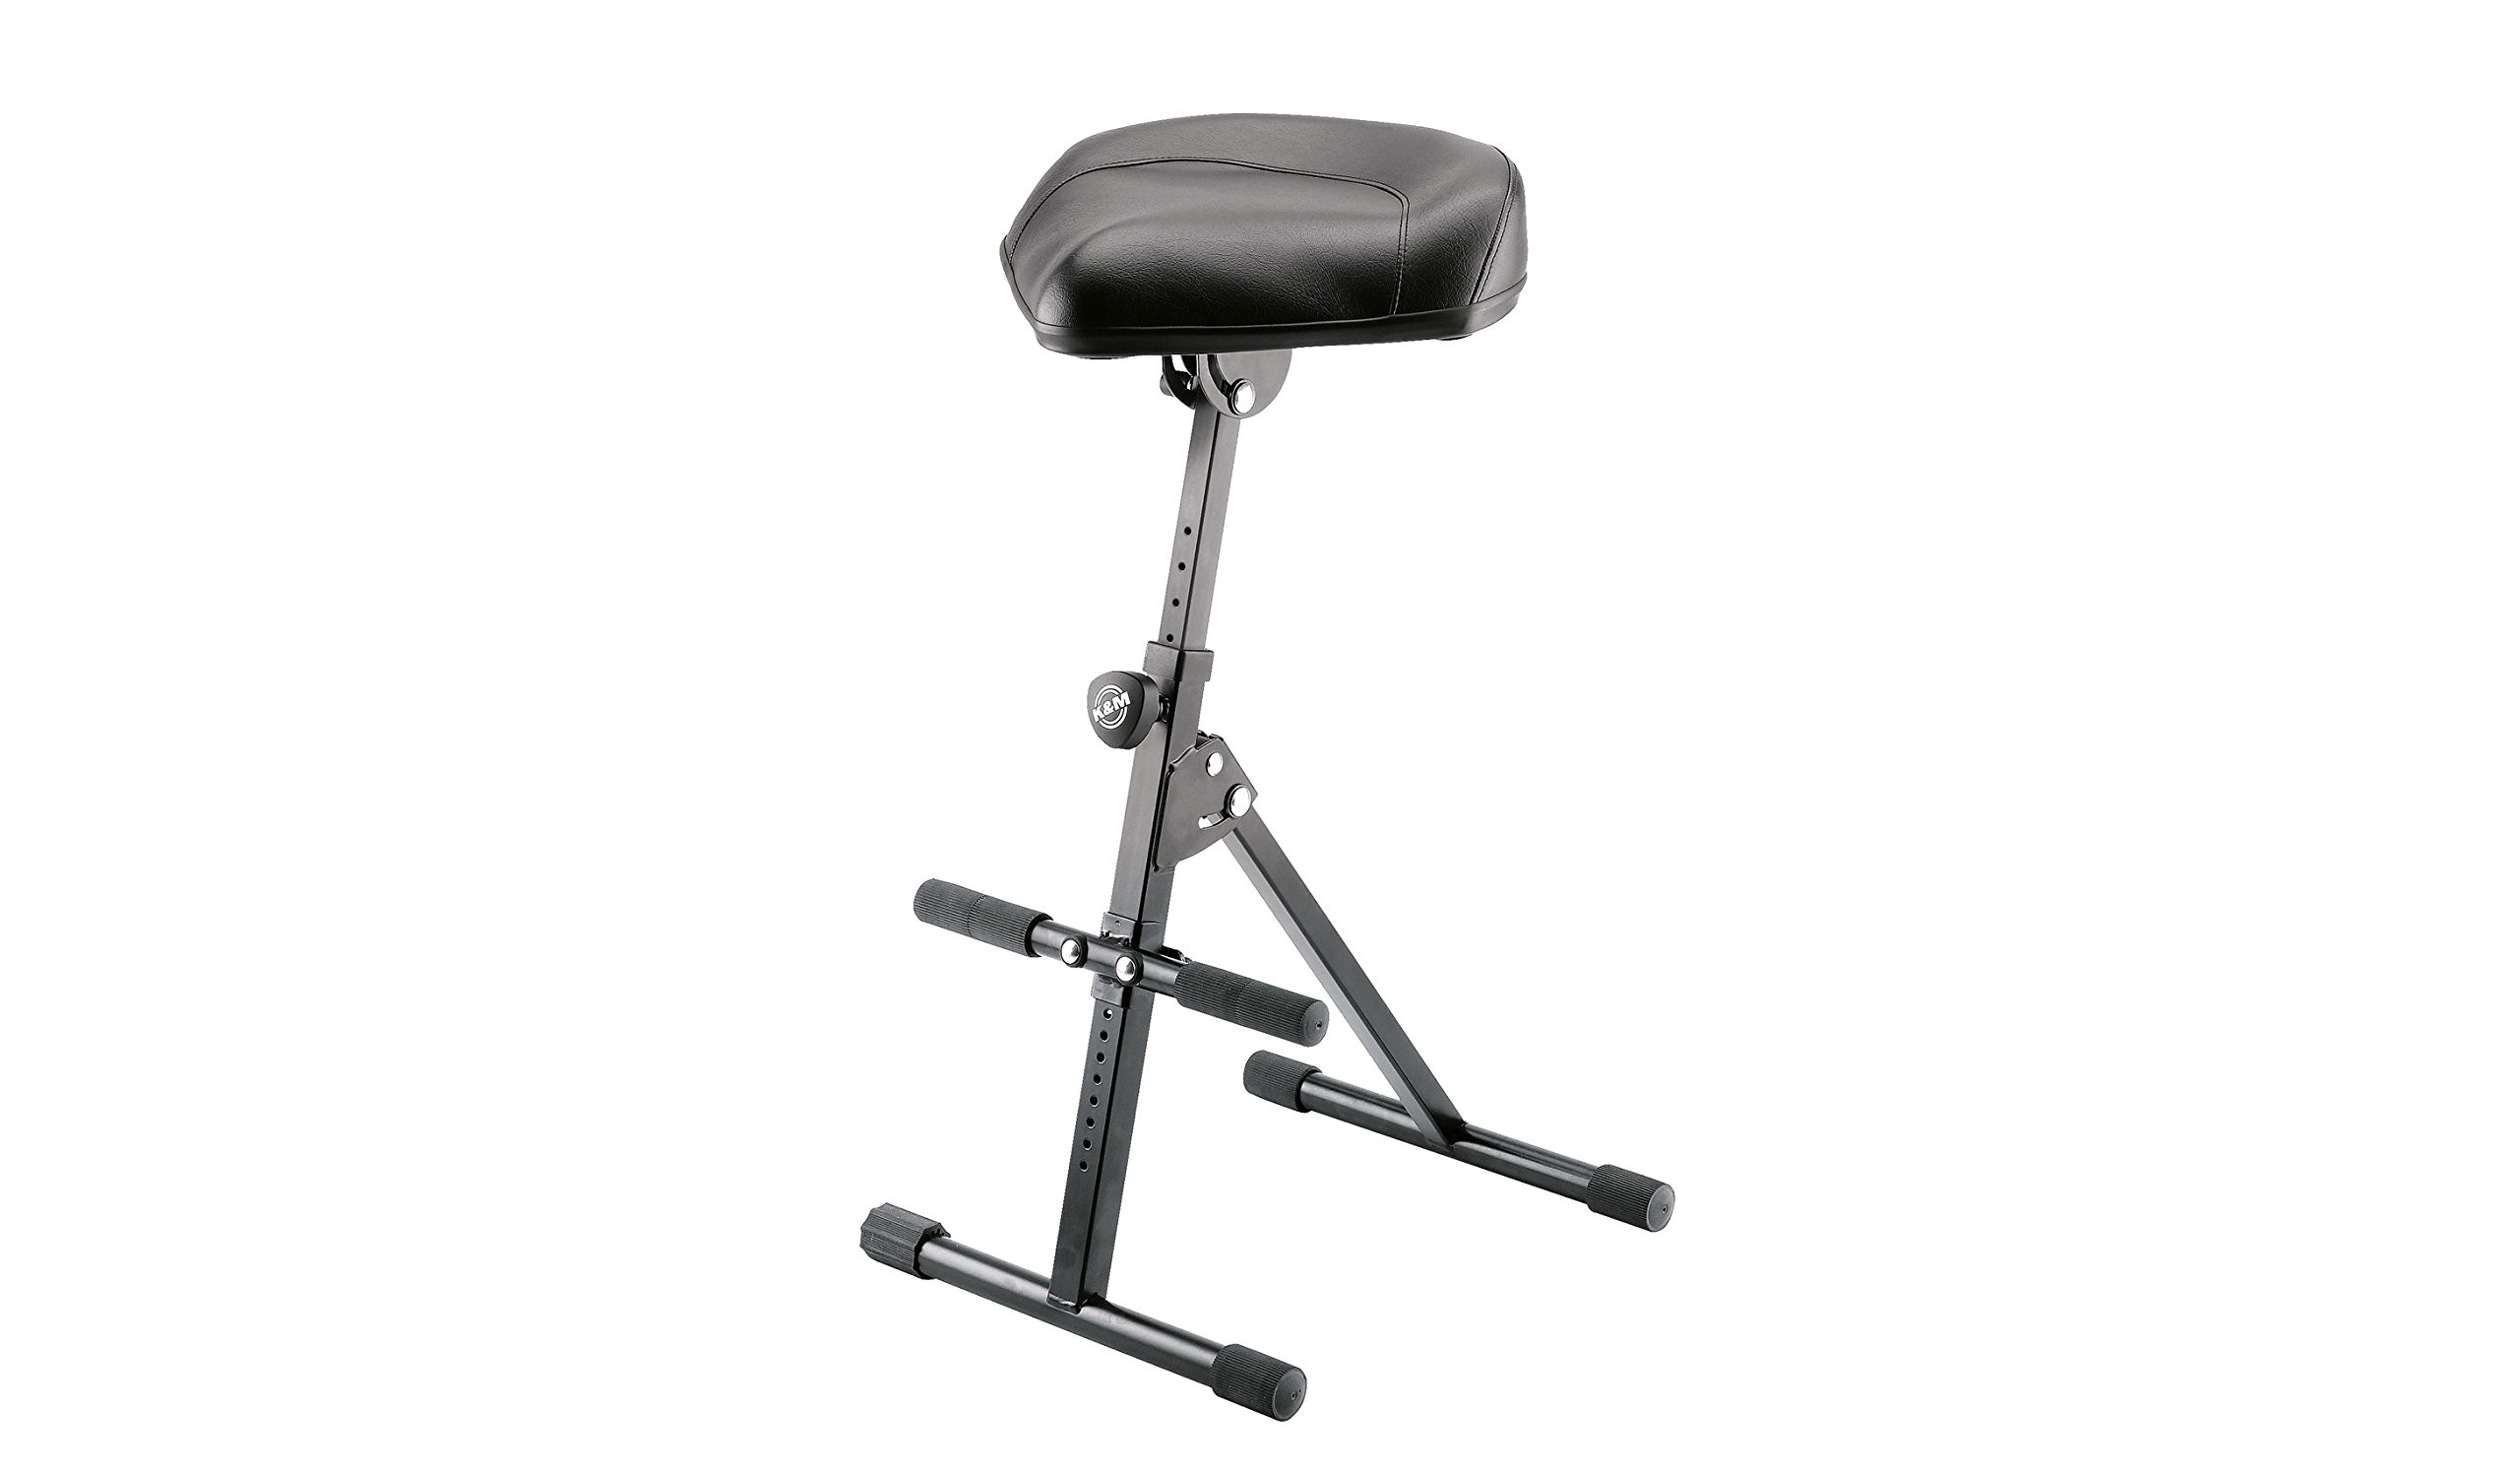 K&M Stands K&M Performance Stool - black imitation leather 14045.000.55 by K&M Stands (Image #1)